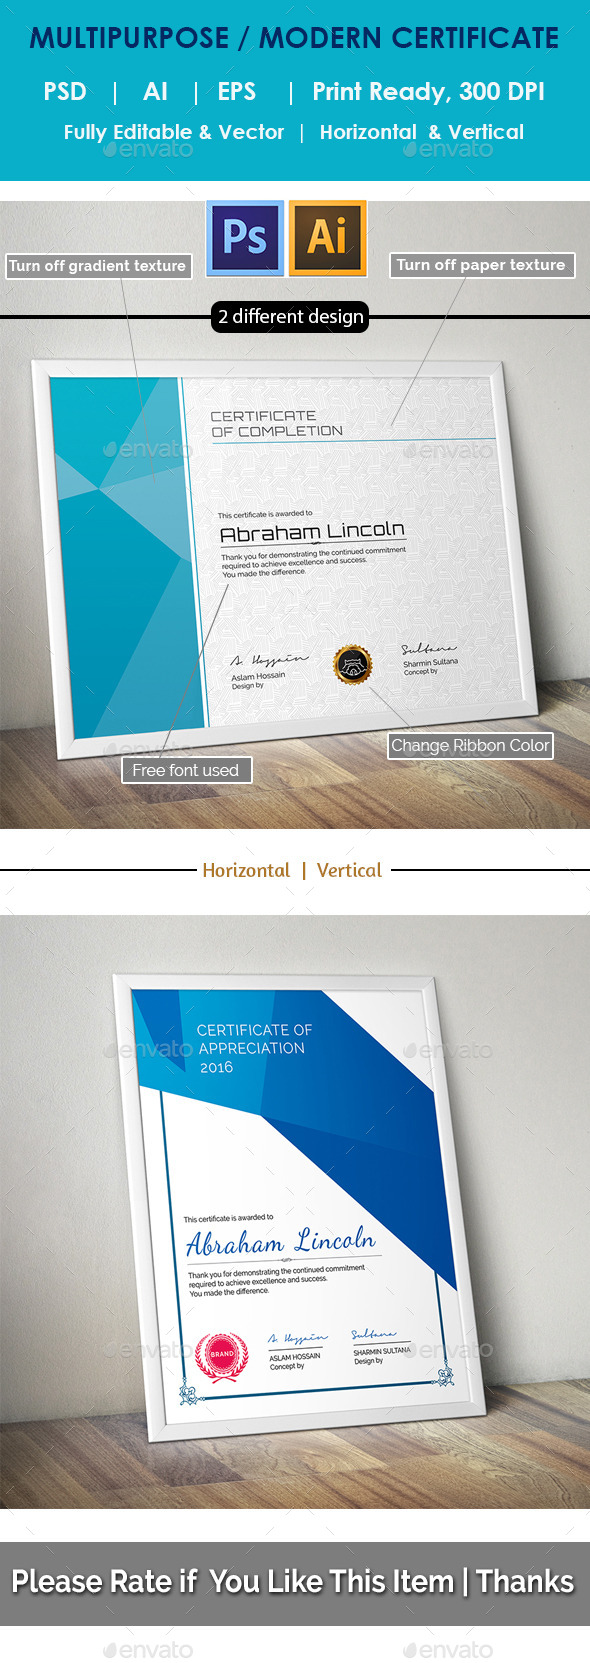 GraphicRiver Modern Multipurpose Certificate GD019 11099001